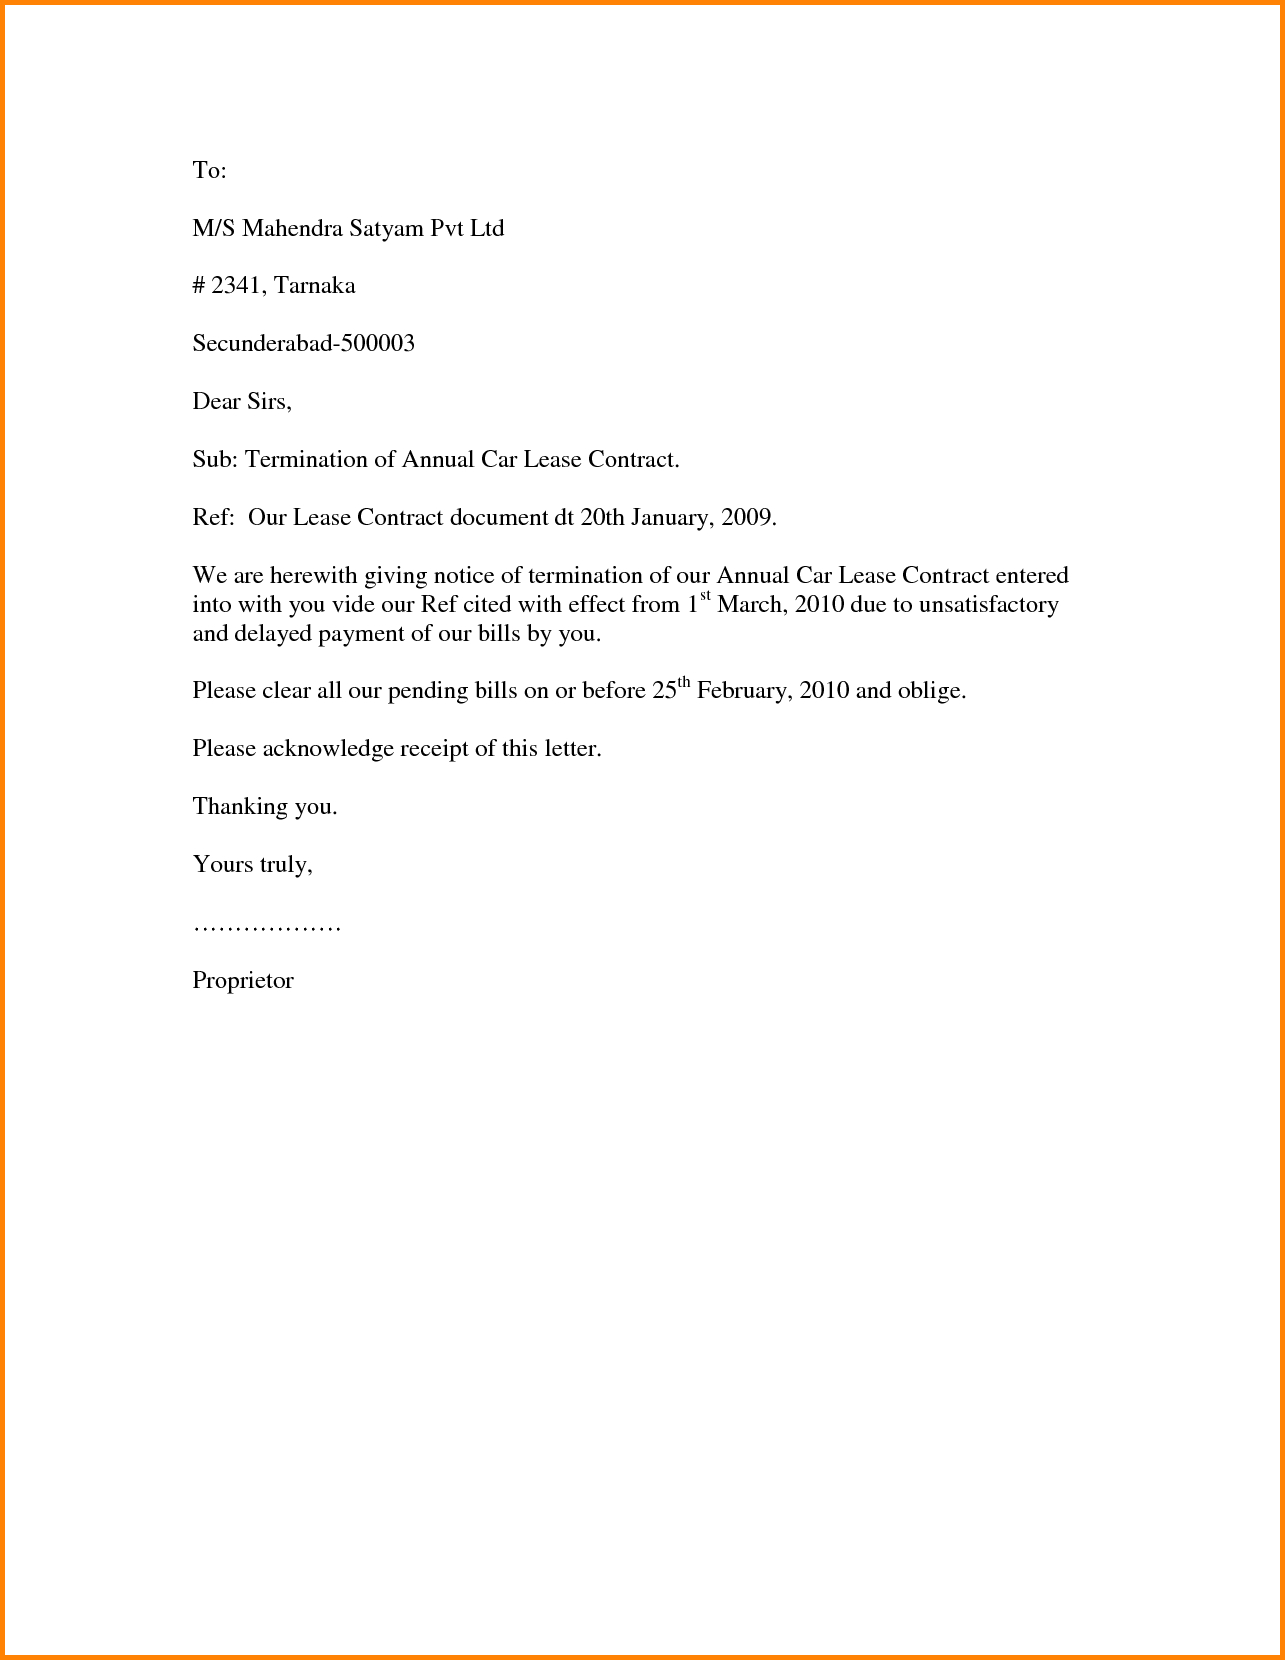 tenancy notice letter template Collection-Letter Template To End A Contract Copy Contract Letter Work Sample 10-p